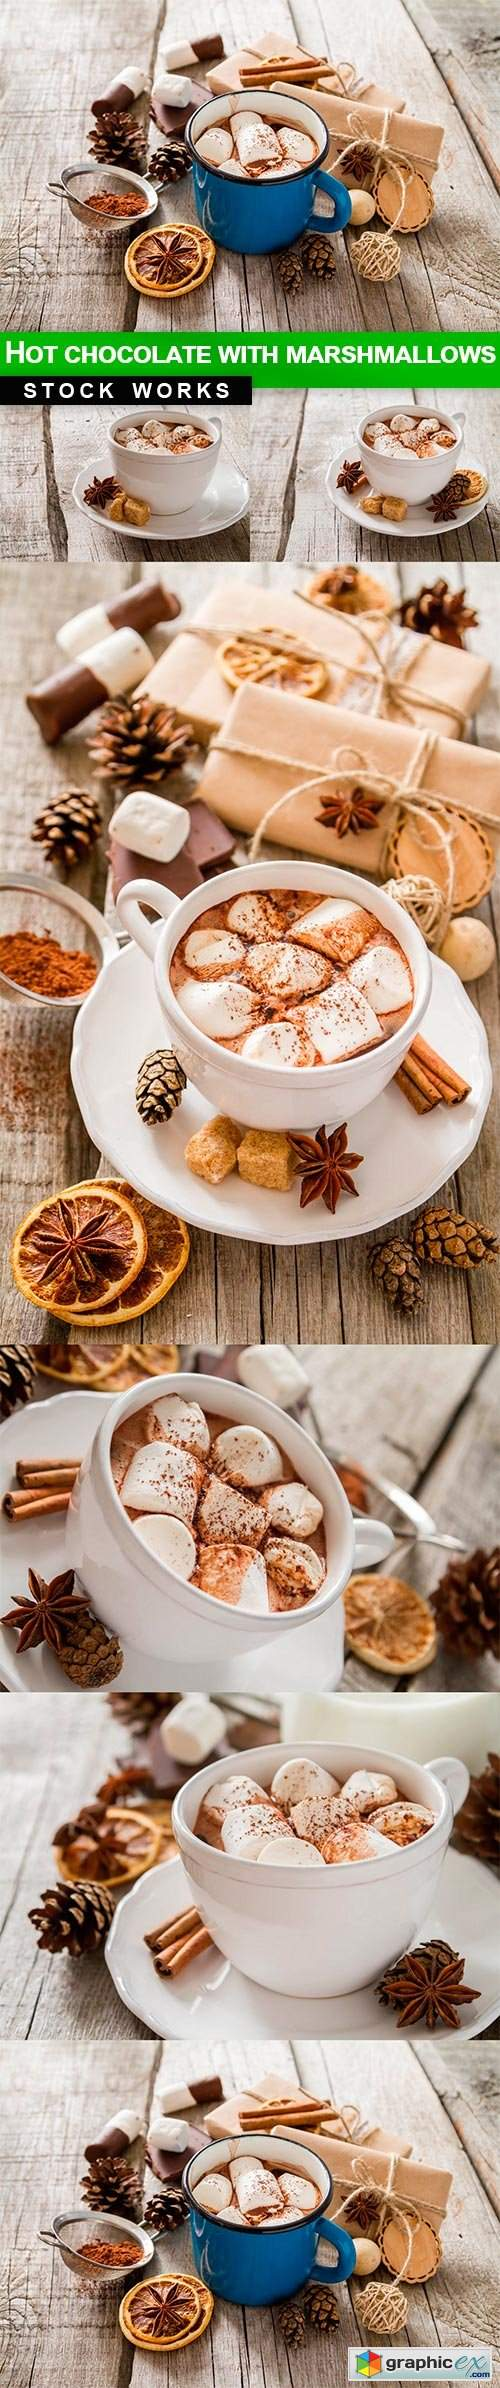 Hot chocolate with marshmallows - 7 UHQ JPEG